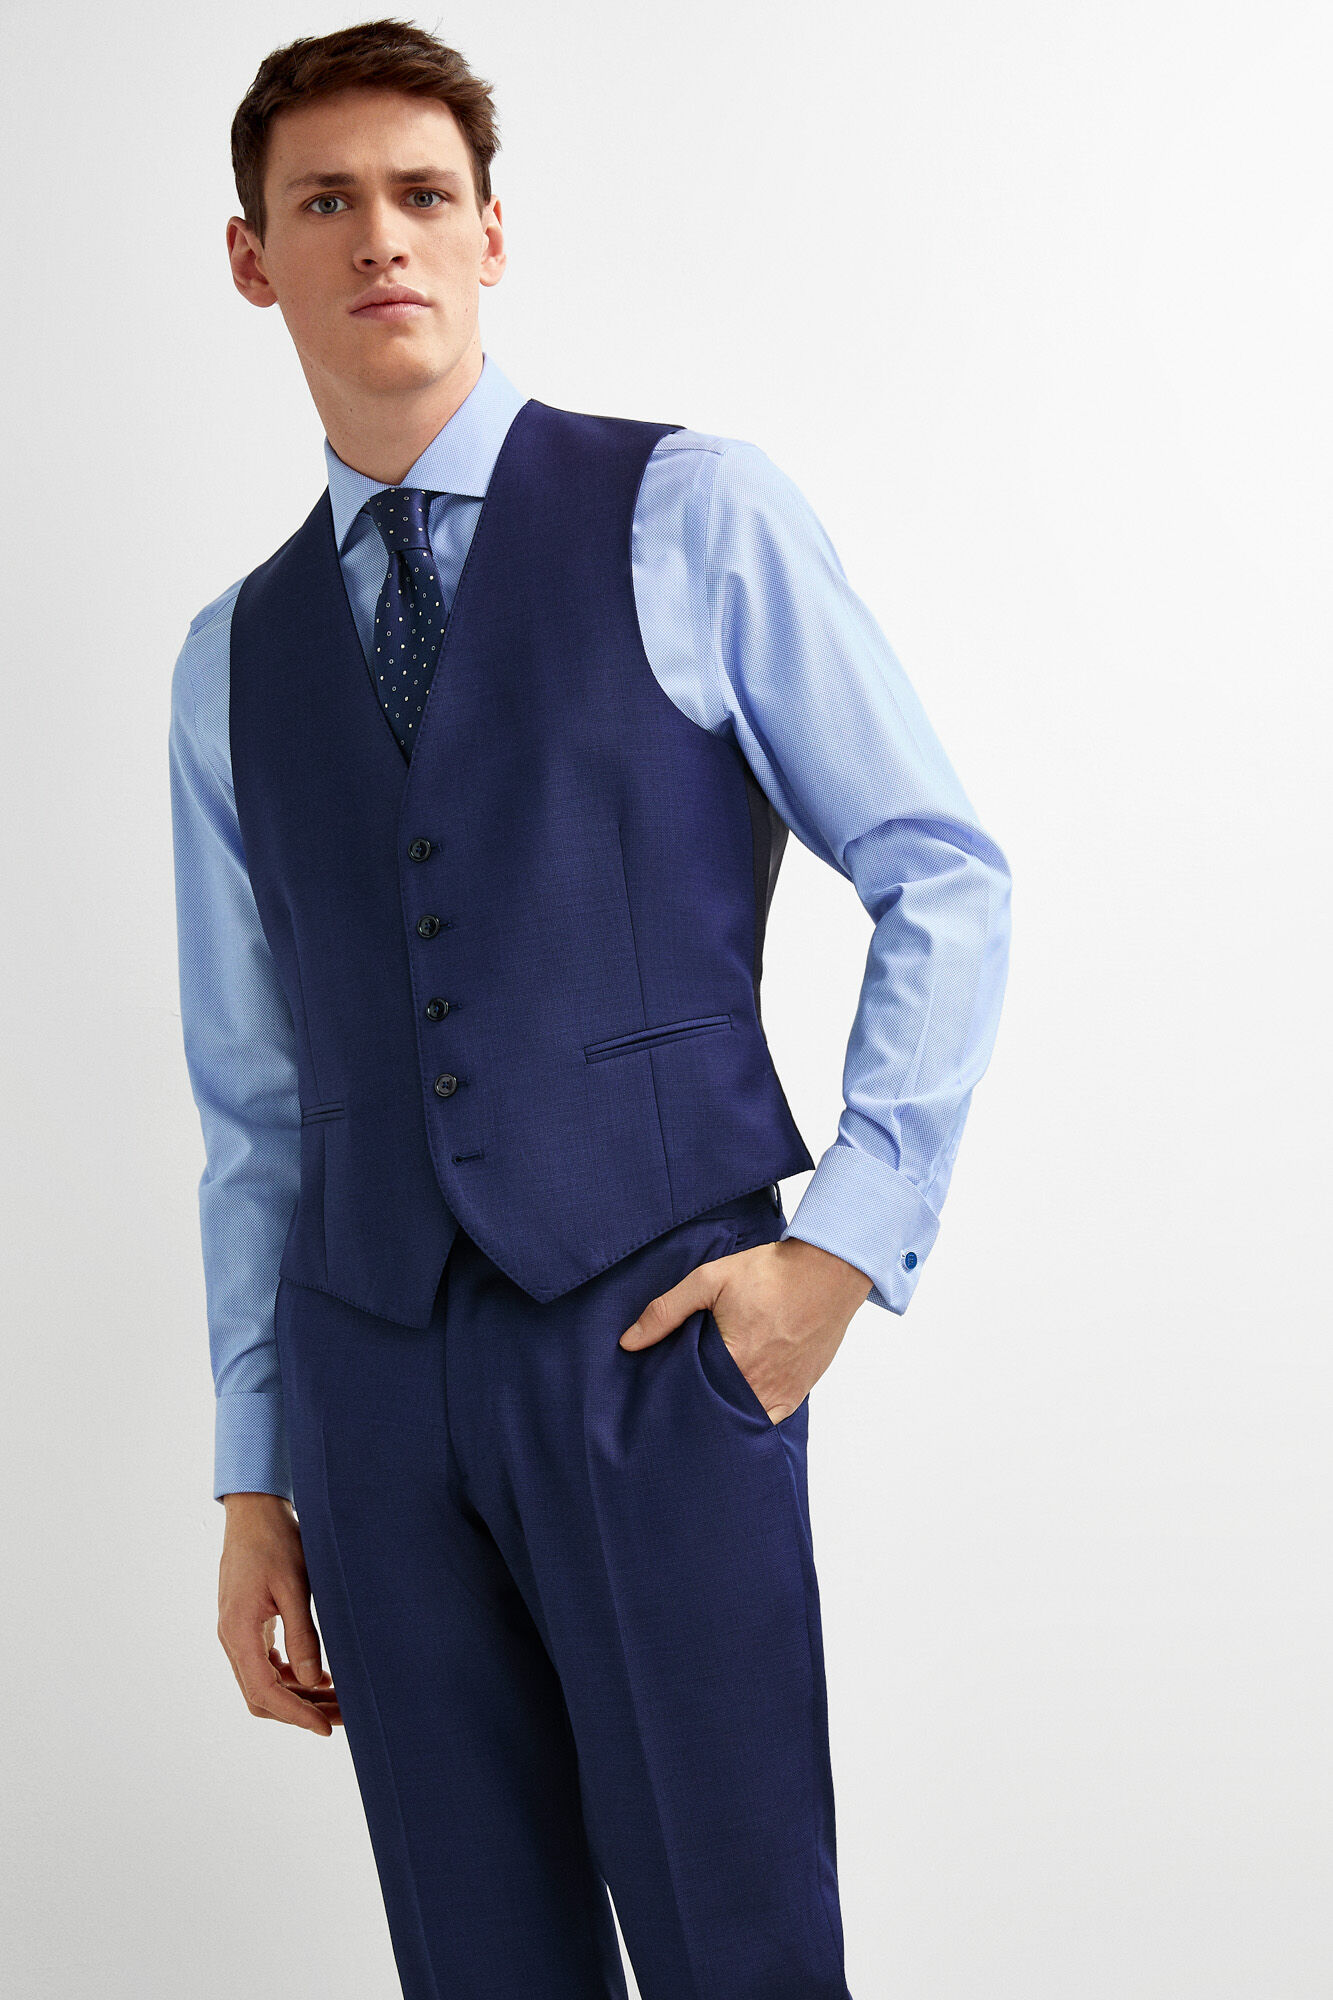 b106ee21a4 Chaleco traje azul tailored fit